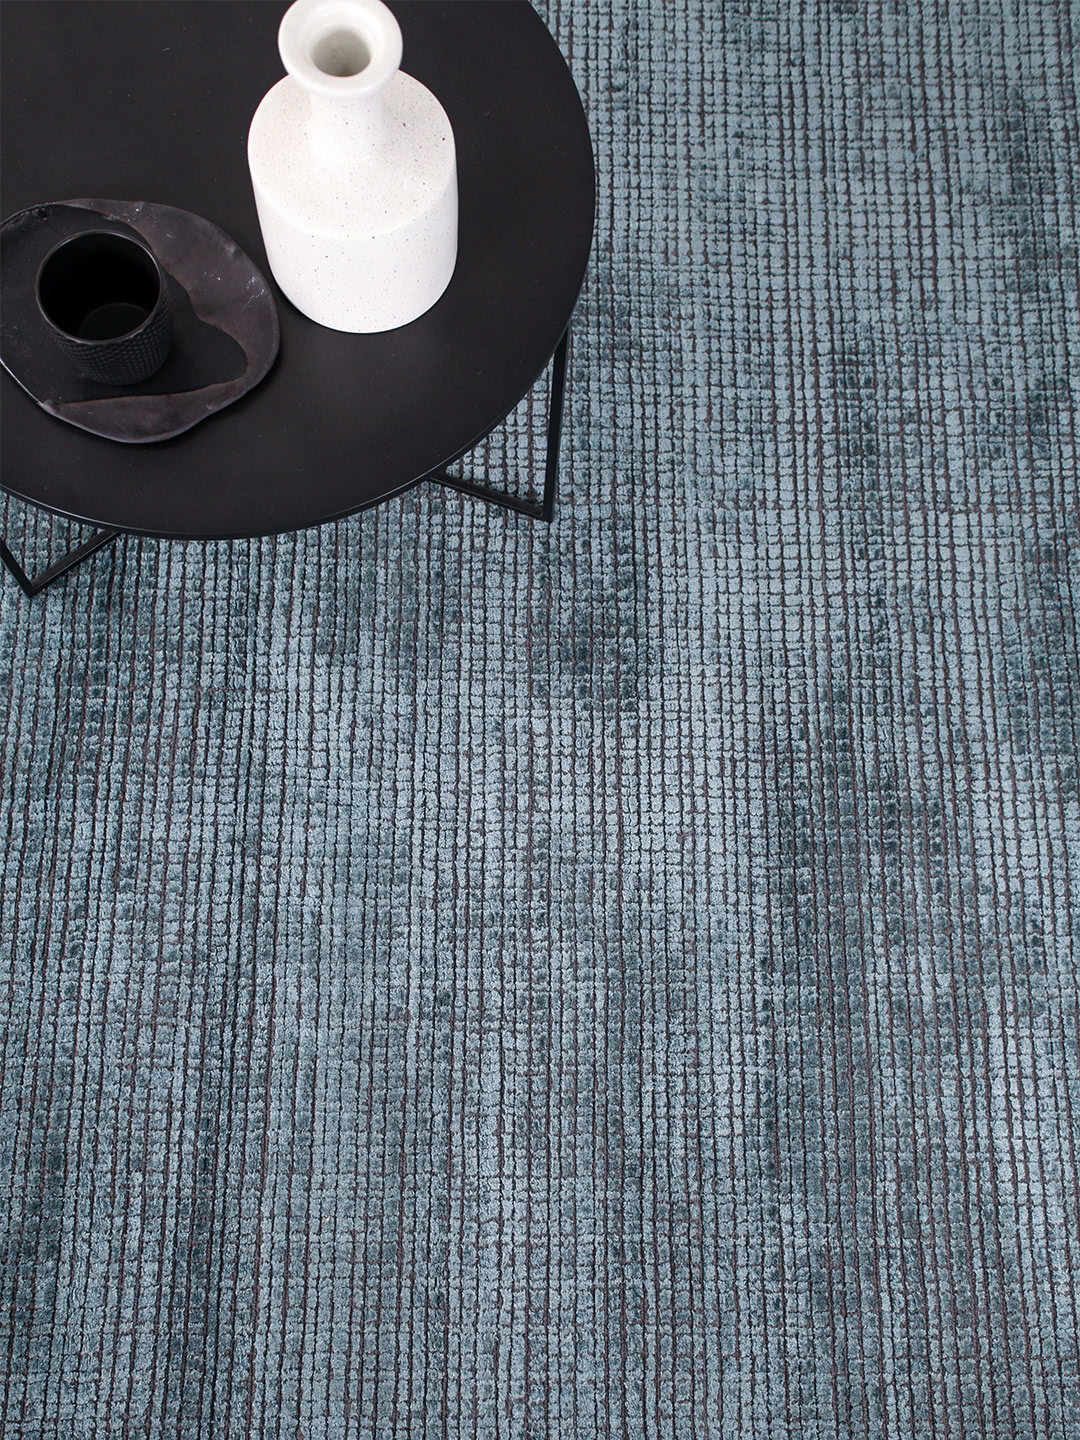 Lava Teal blue textured rug handloom knotted in wool and artsilk